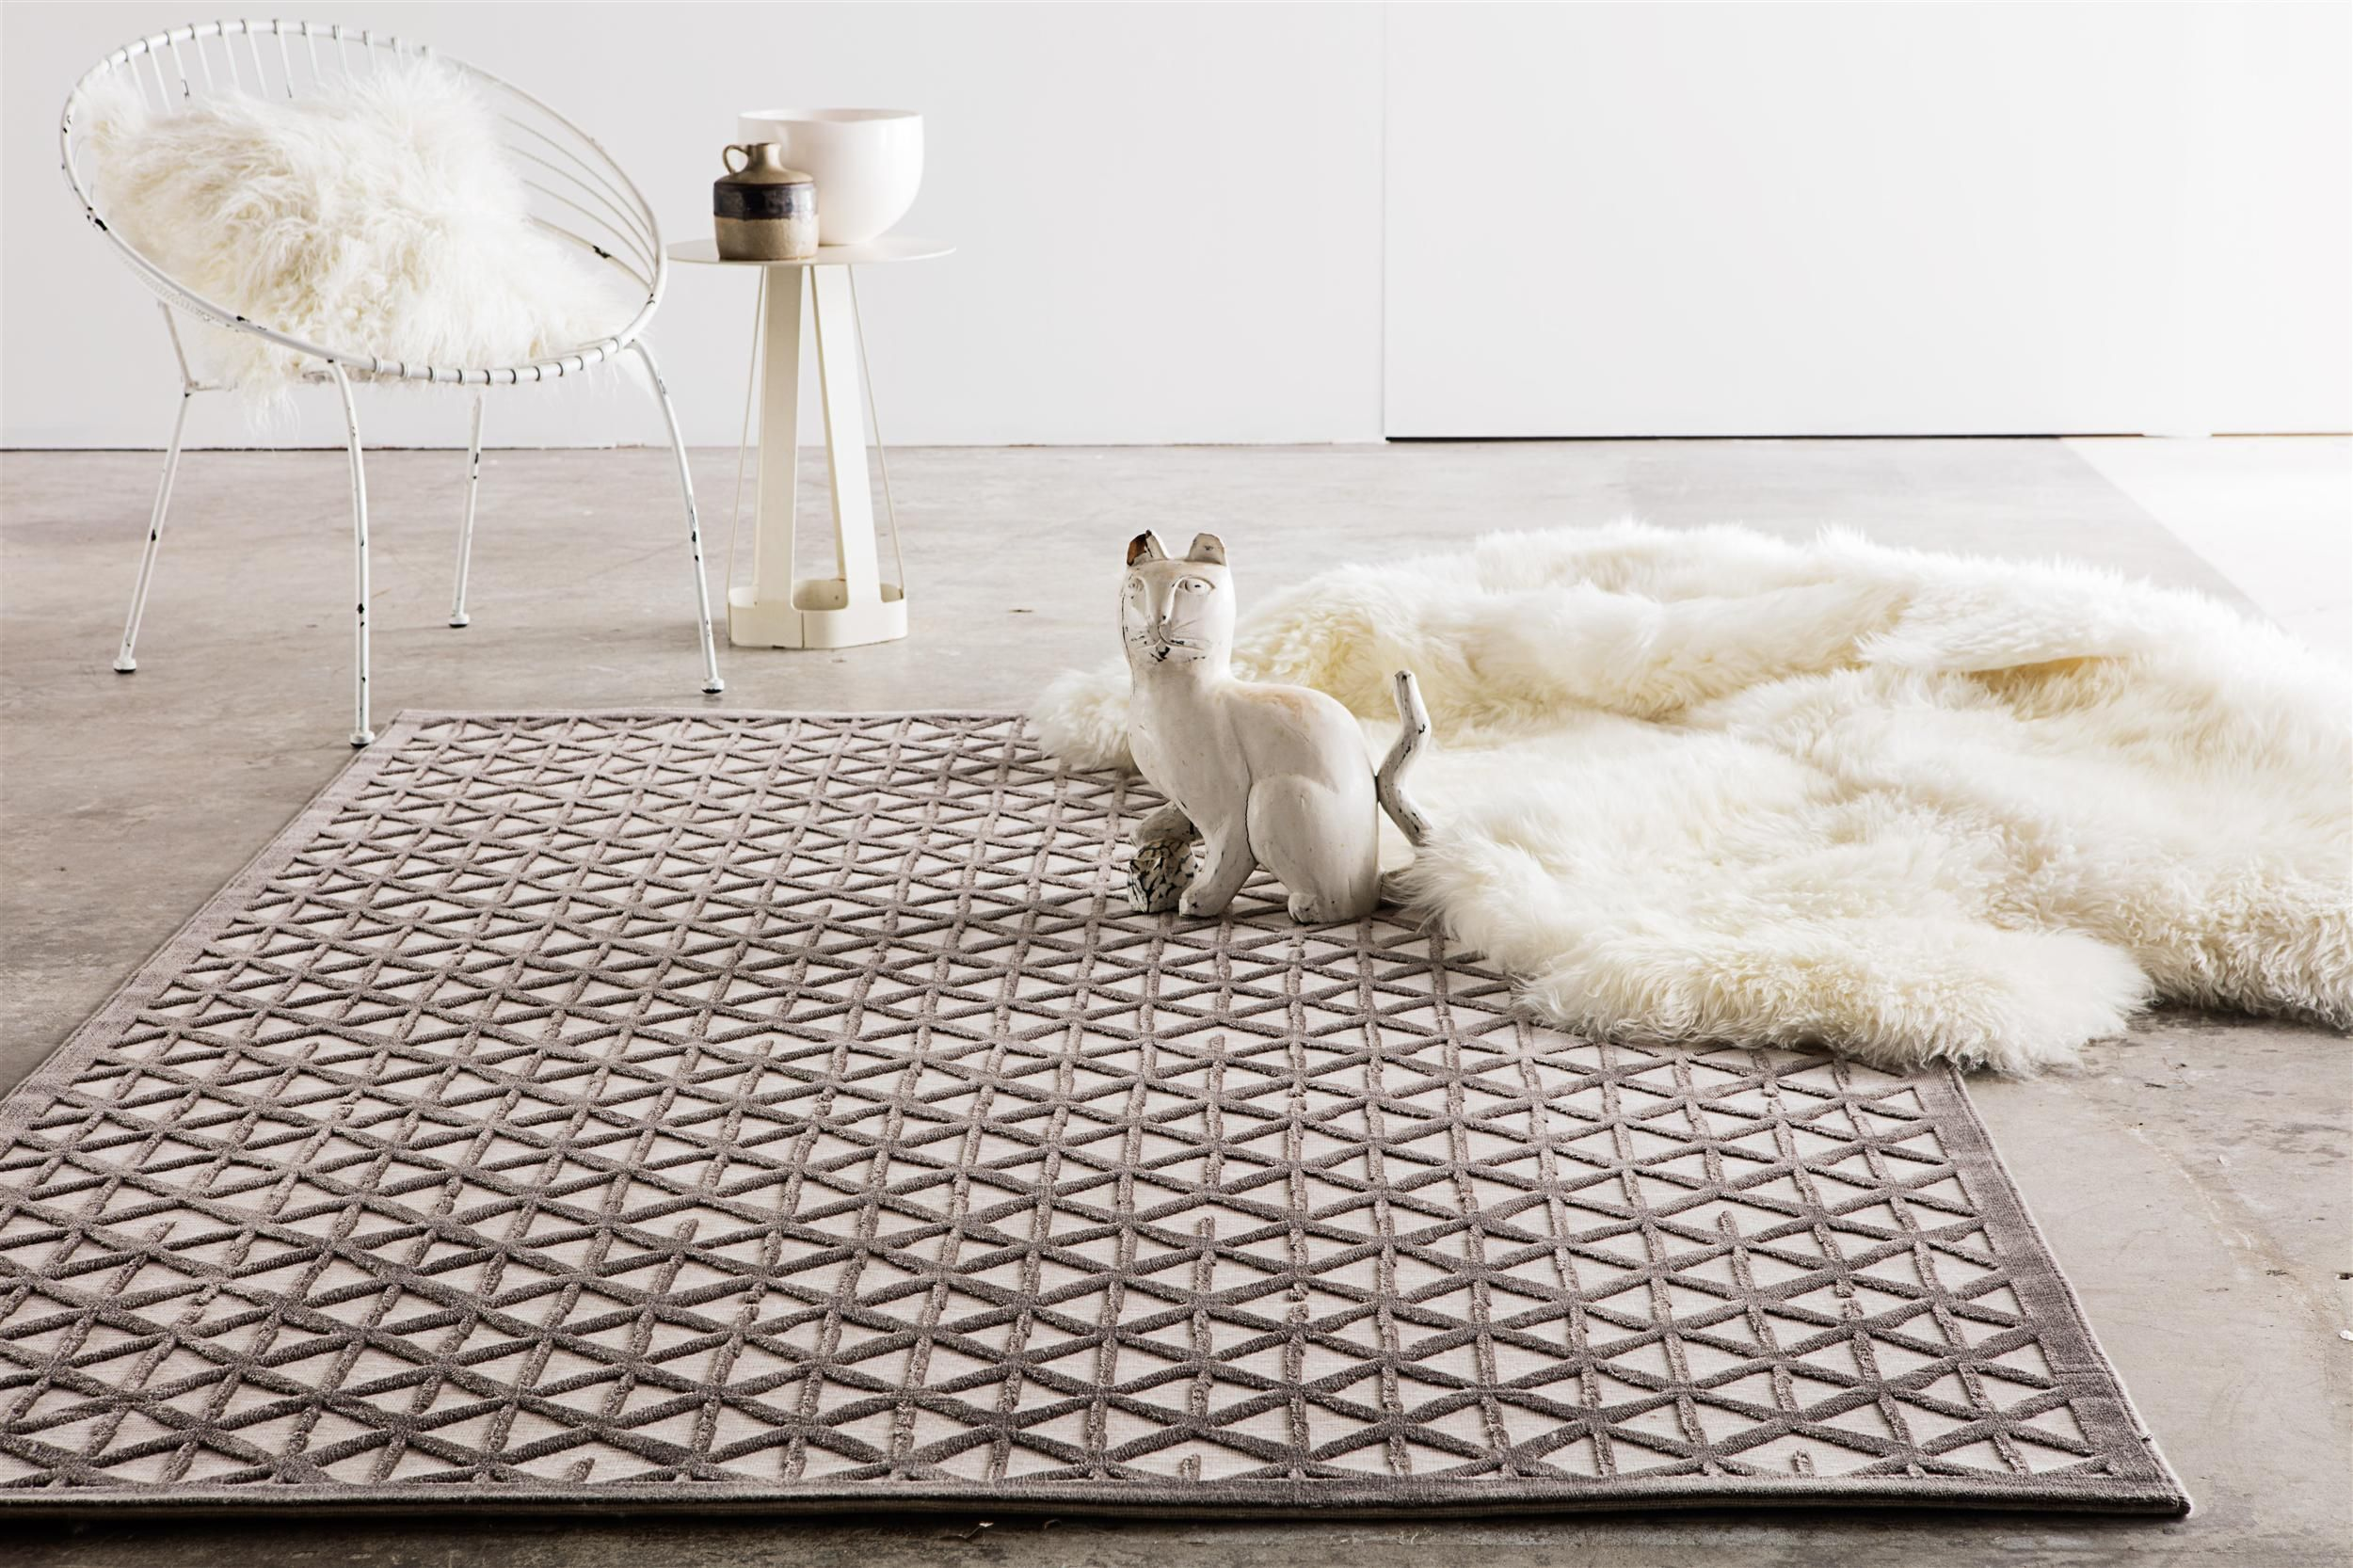 Add A Peppy Dimension To Your Space With Our Geometric Area Rugs Stylish Yet Comfortable Our Handmade Geometric Rugs Will Conv Buying Carpet Rugs Rugs Online